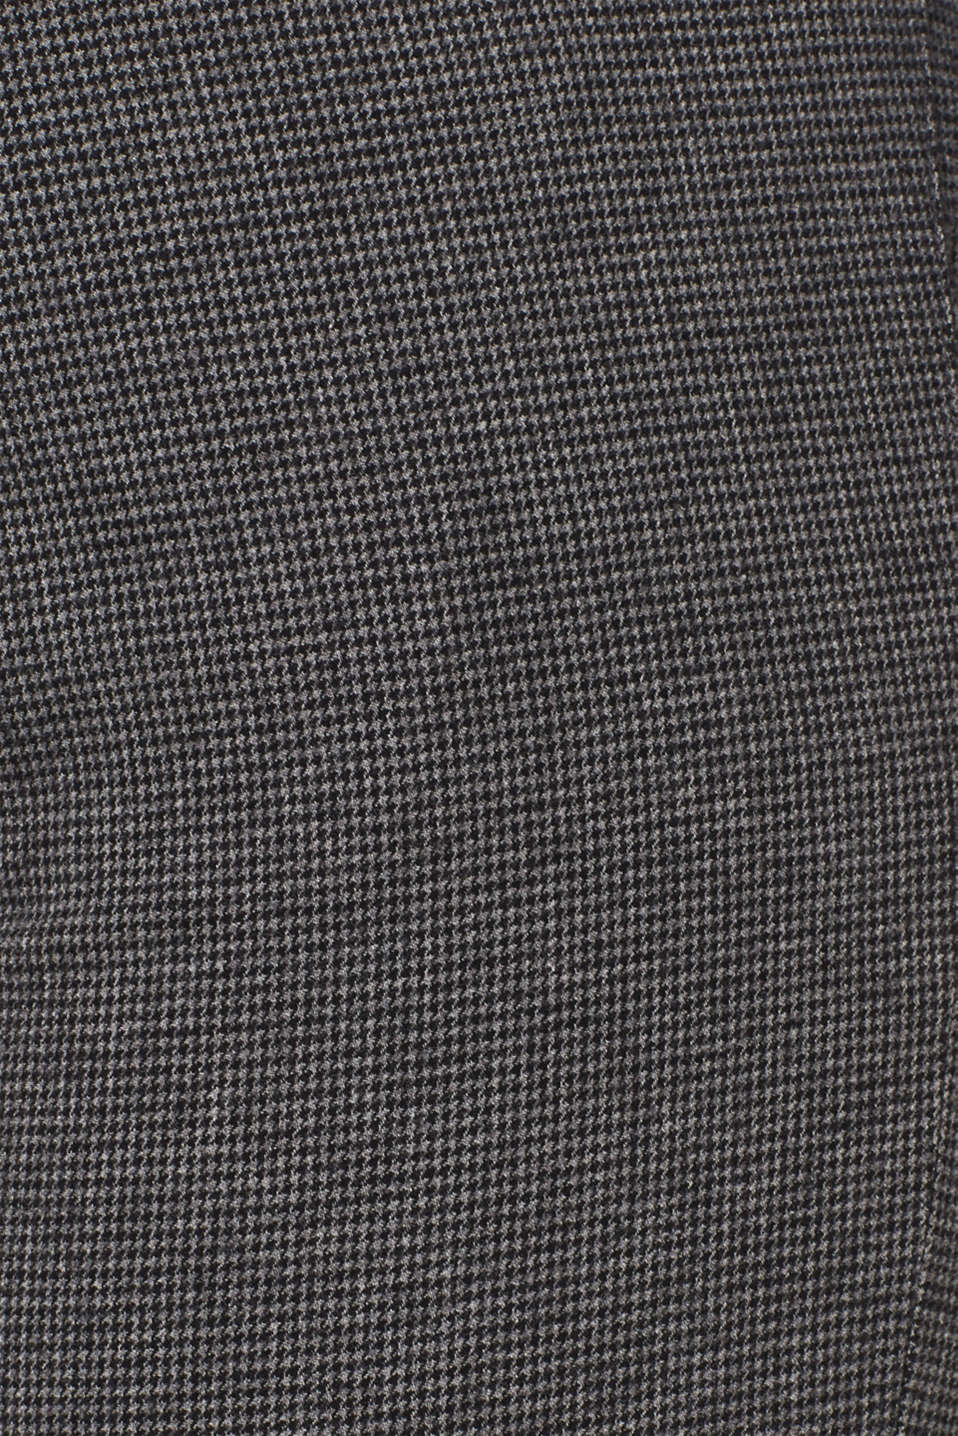 Houndstooth trousers made of stretch cotton, GREY, detail image number 4